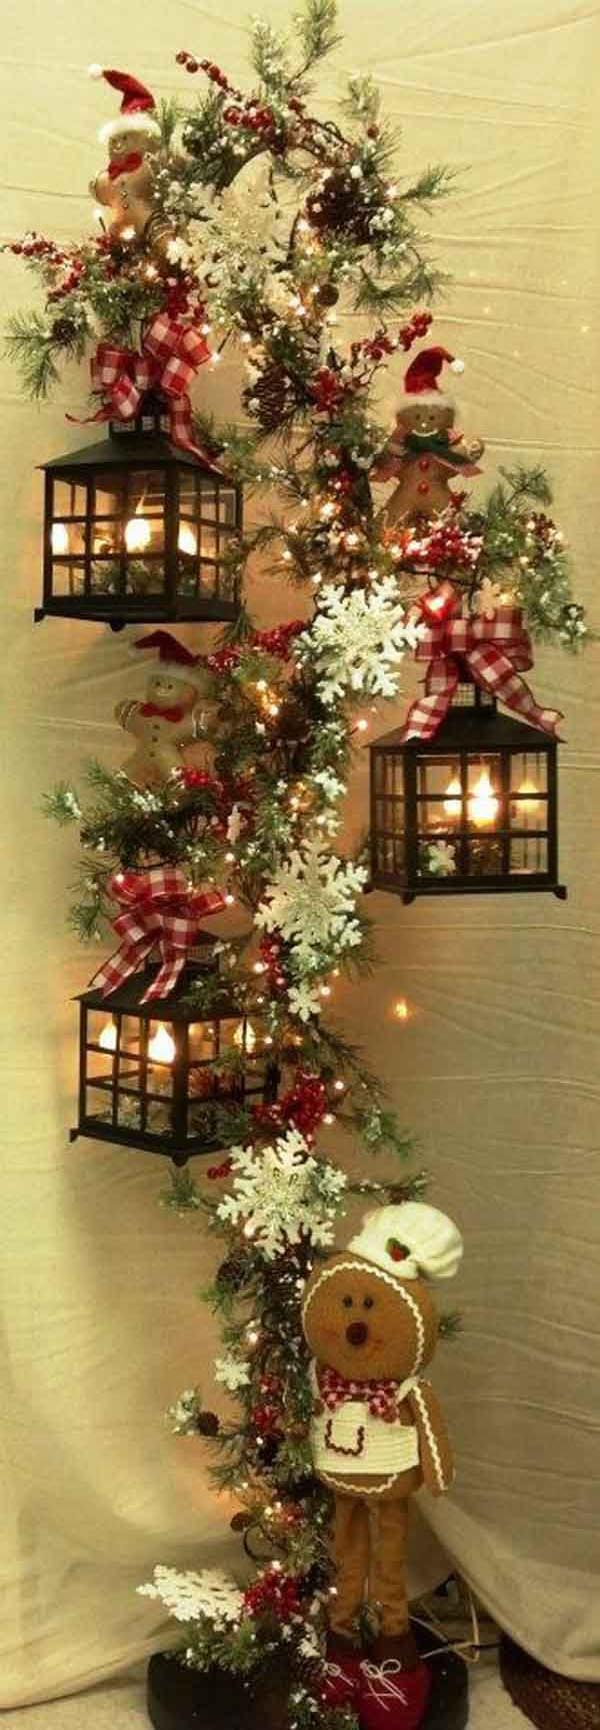 Most popular christmas pins in pinterest christmas for Indoor xmas decorating ideas